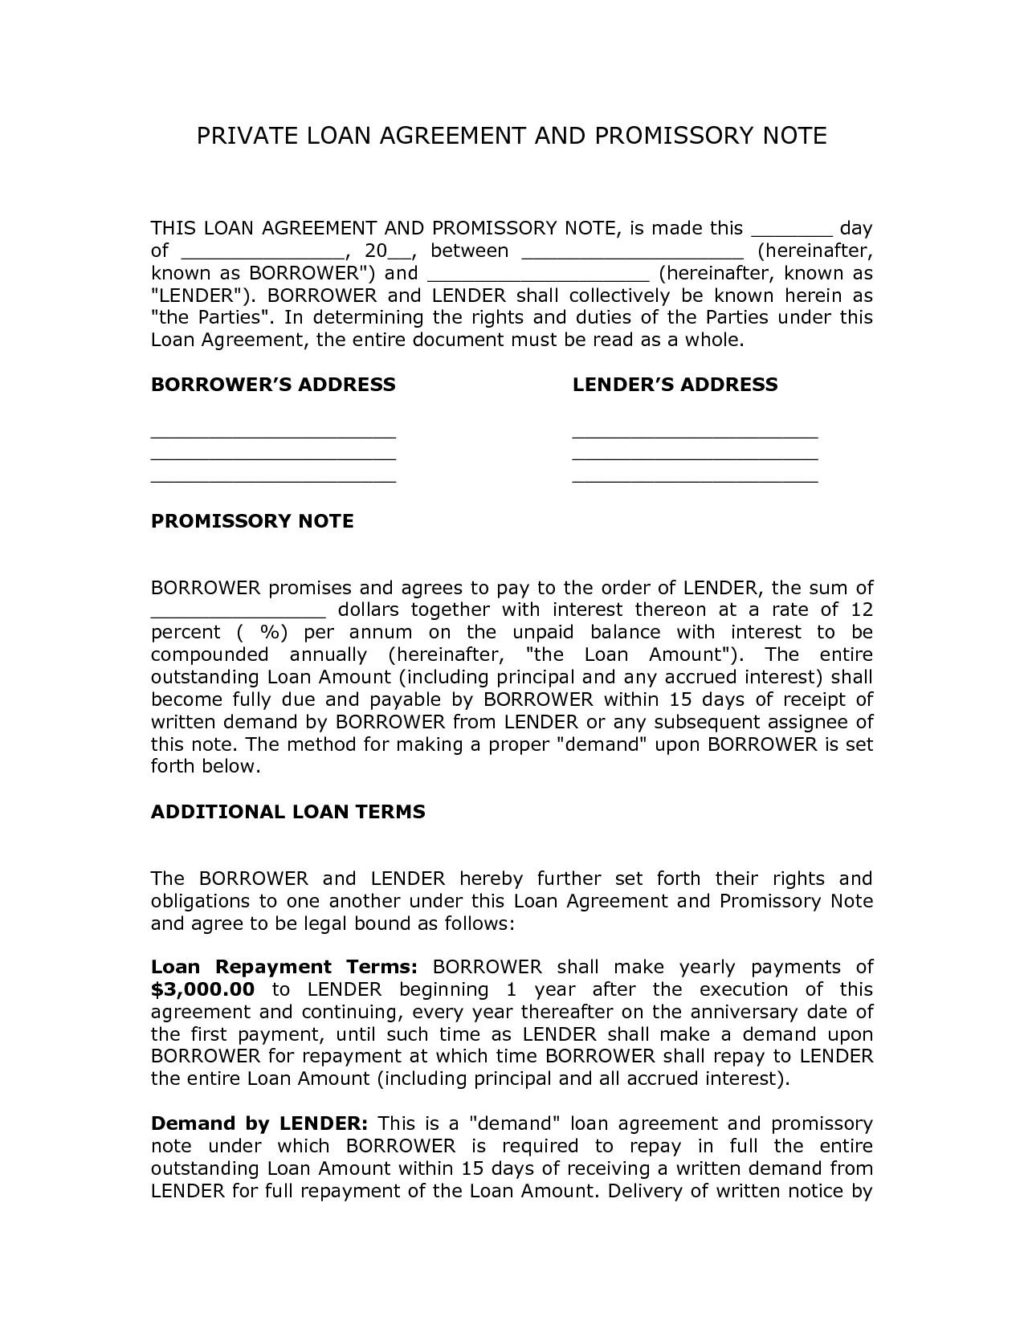 Personal Loan Agreement Letter Private Personal Loan Agreement Contract Template And Promissory